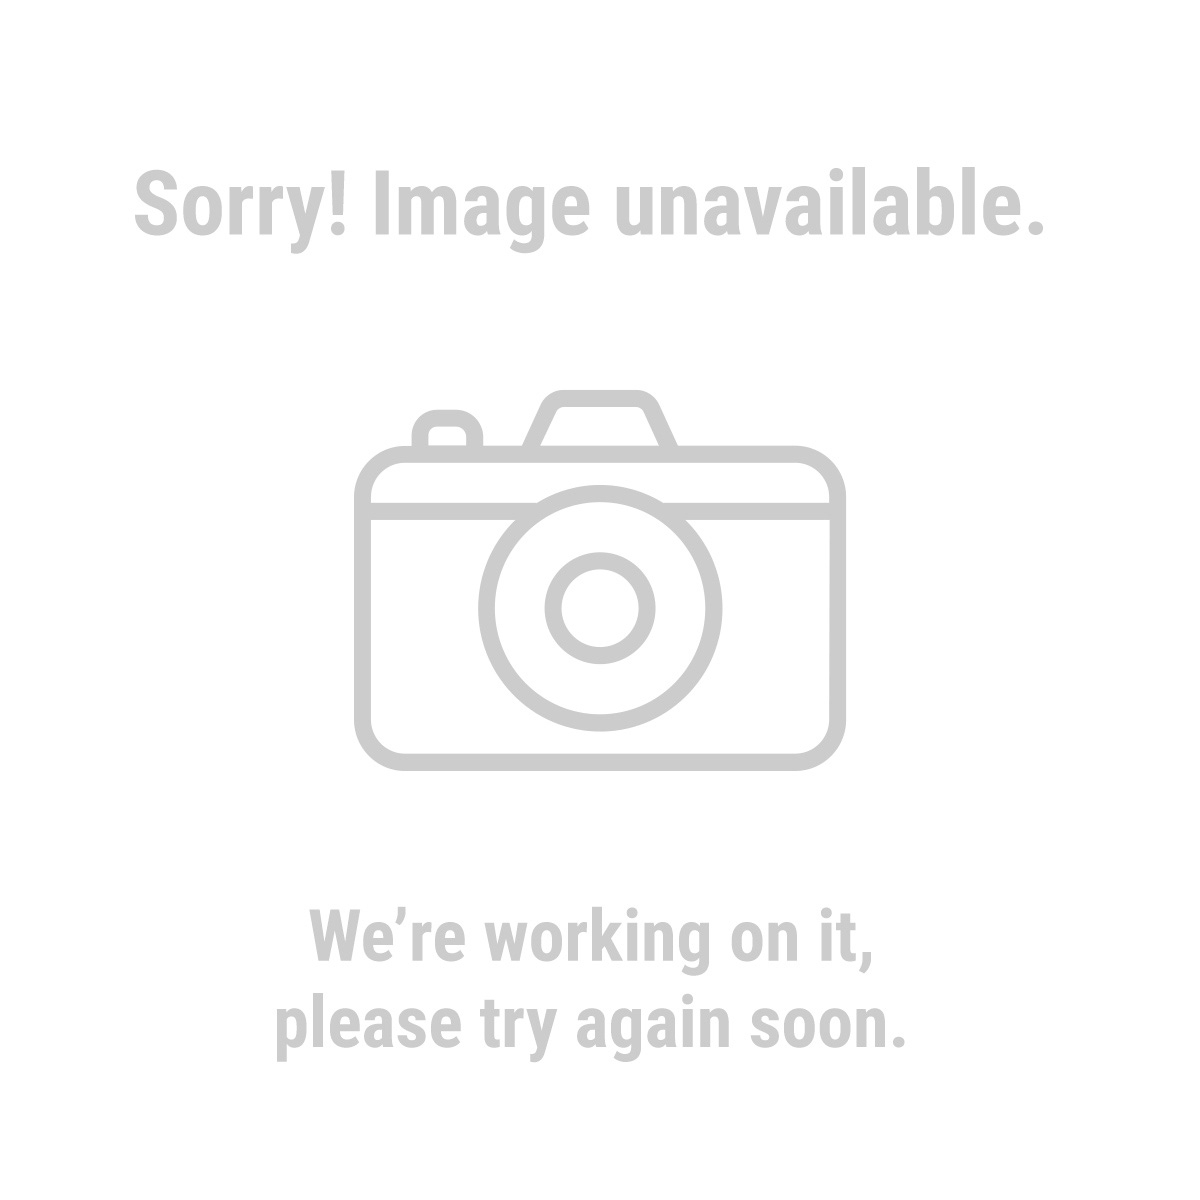 HFT 69121 7 ft. 4 in. x 9 ft. 6 in. All Purpose Weather Resistant Tarp